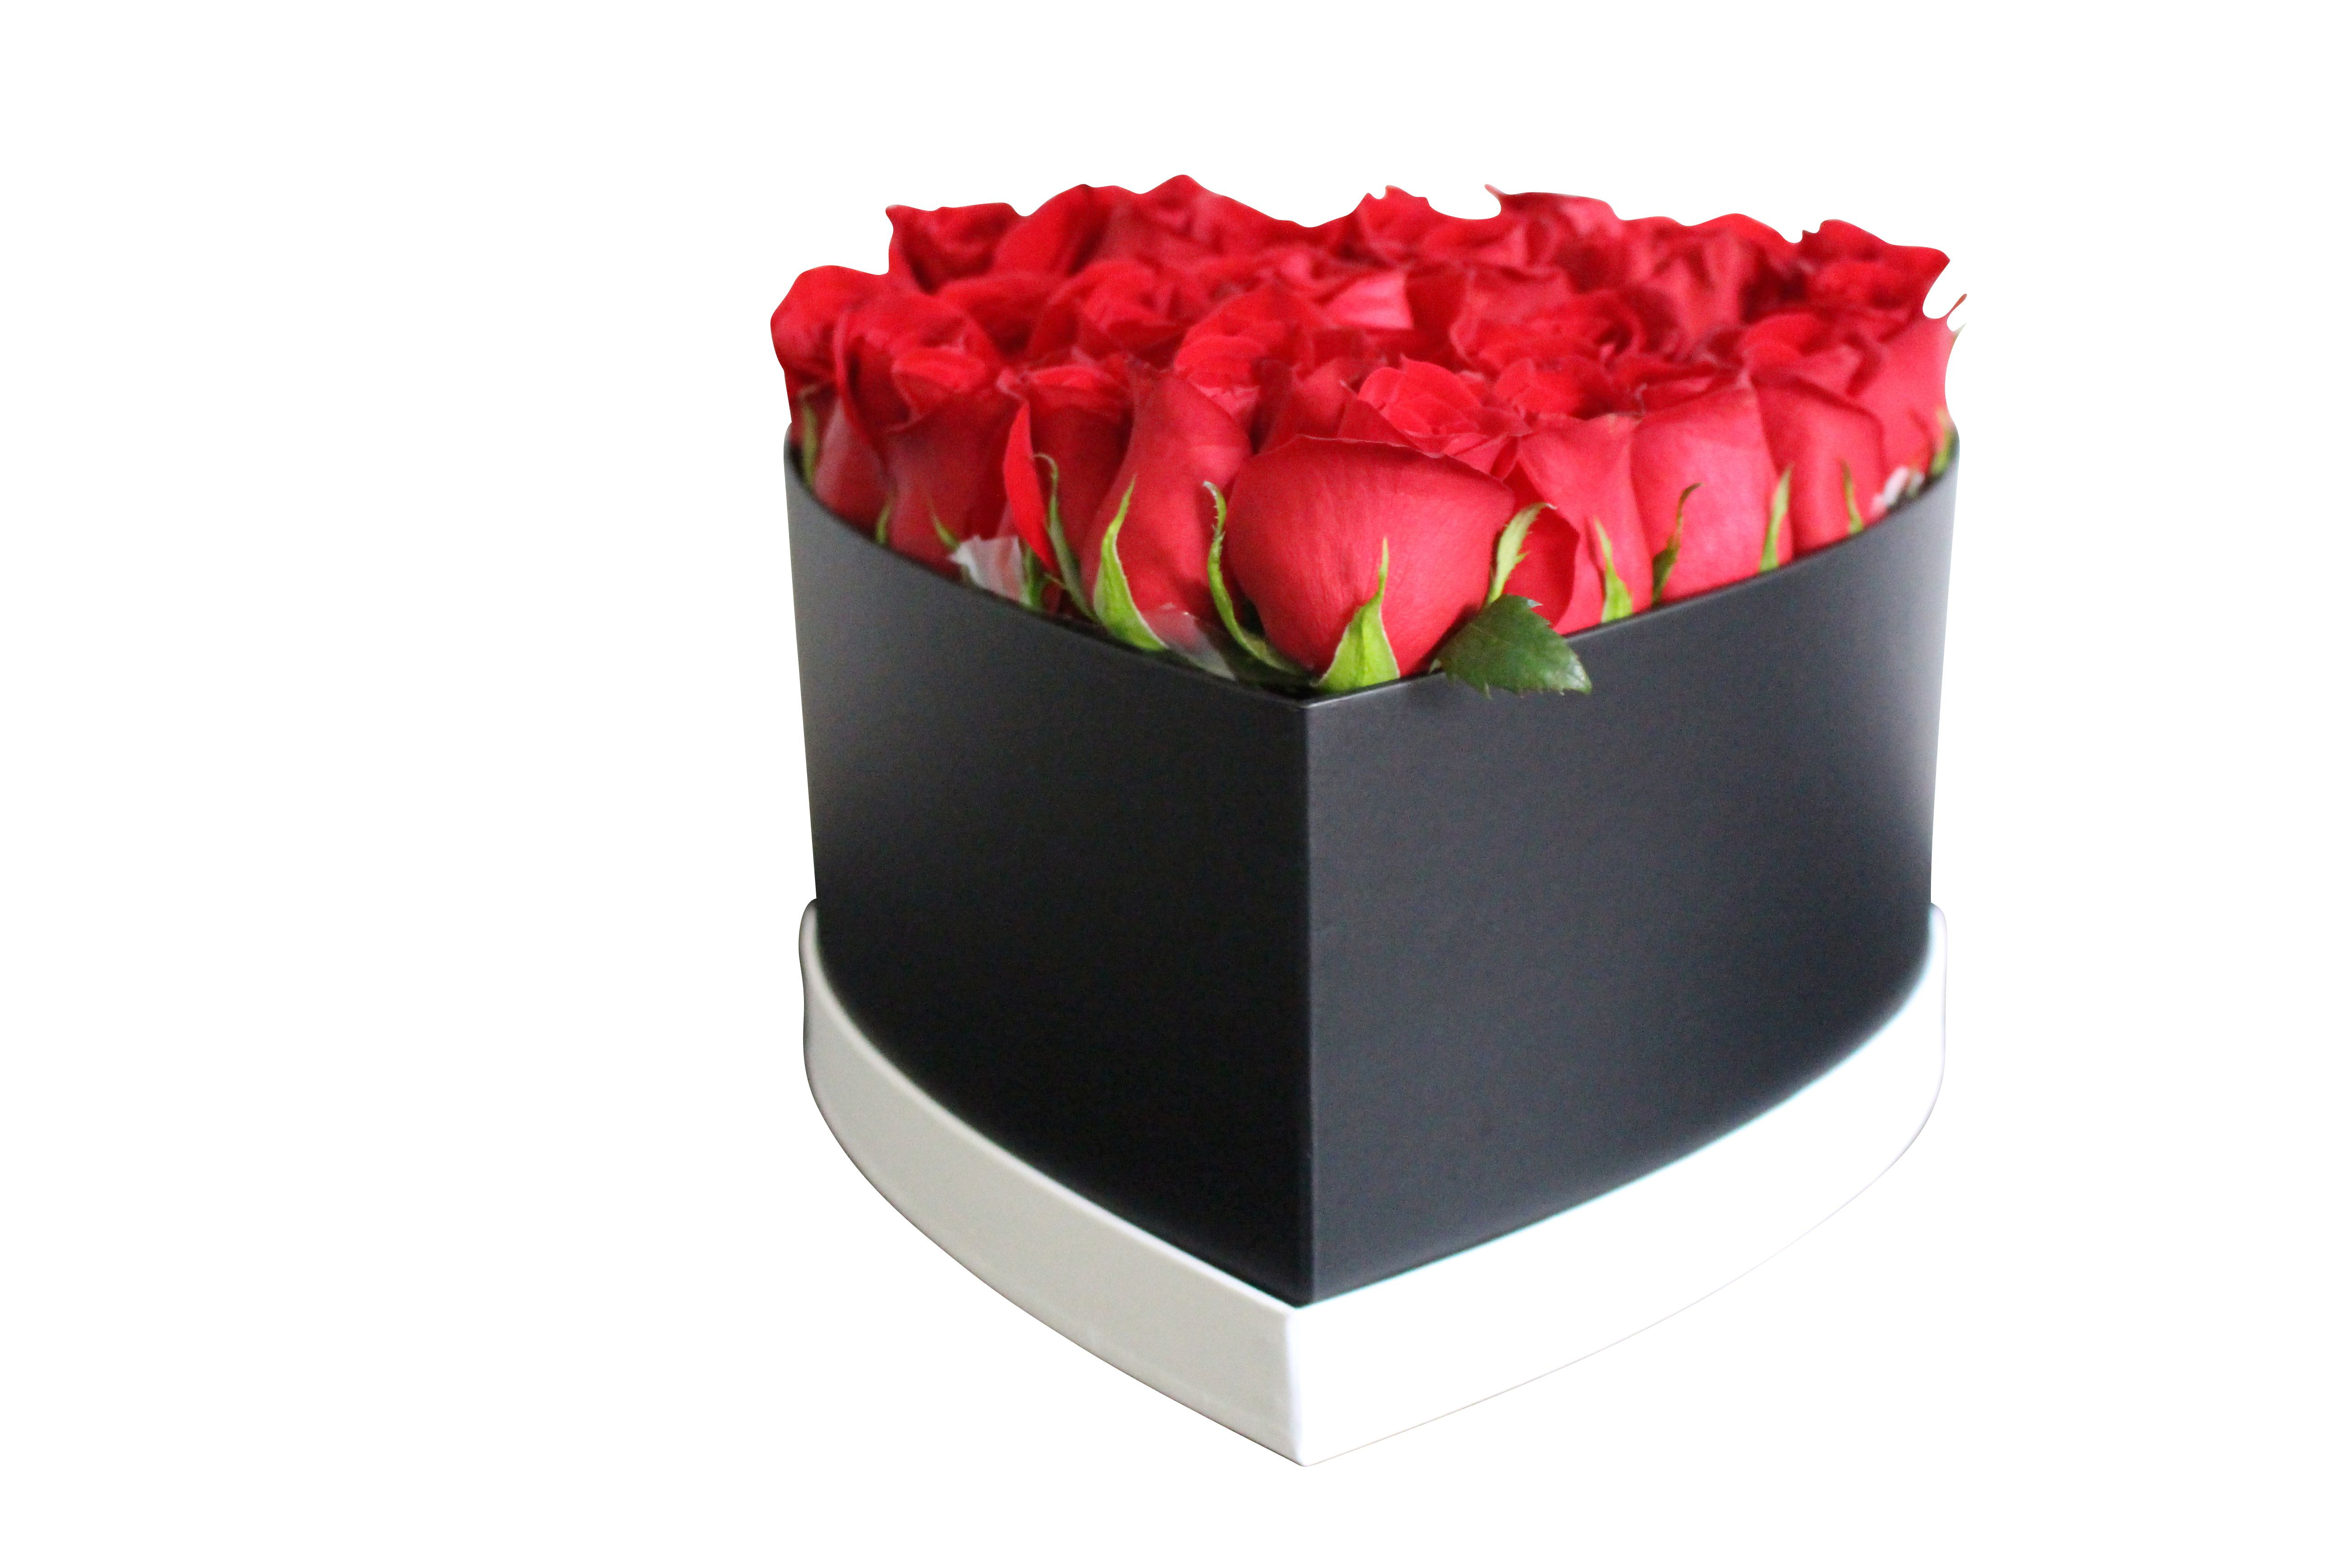 Flowers bouquet is perfect gift this valentines day